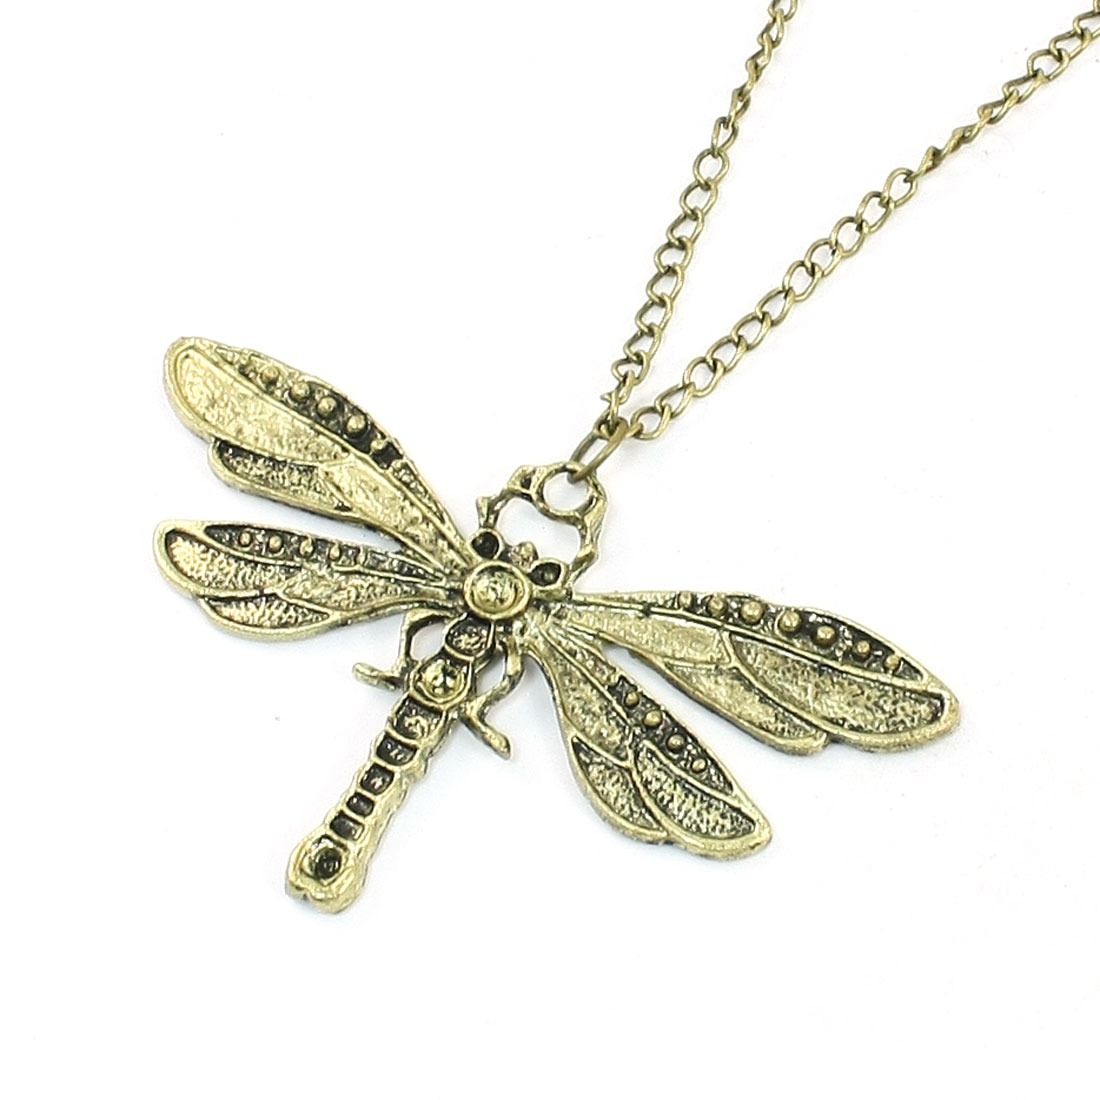 Lady Bronze Tone Dragonfly Shaped Pendant Metal Adjustable Necklace